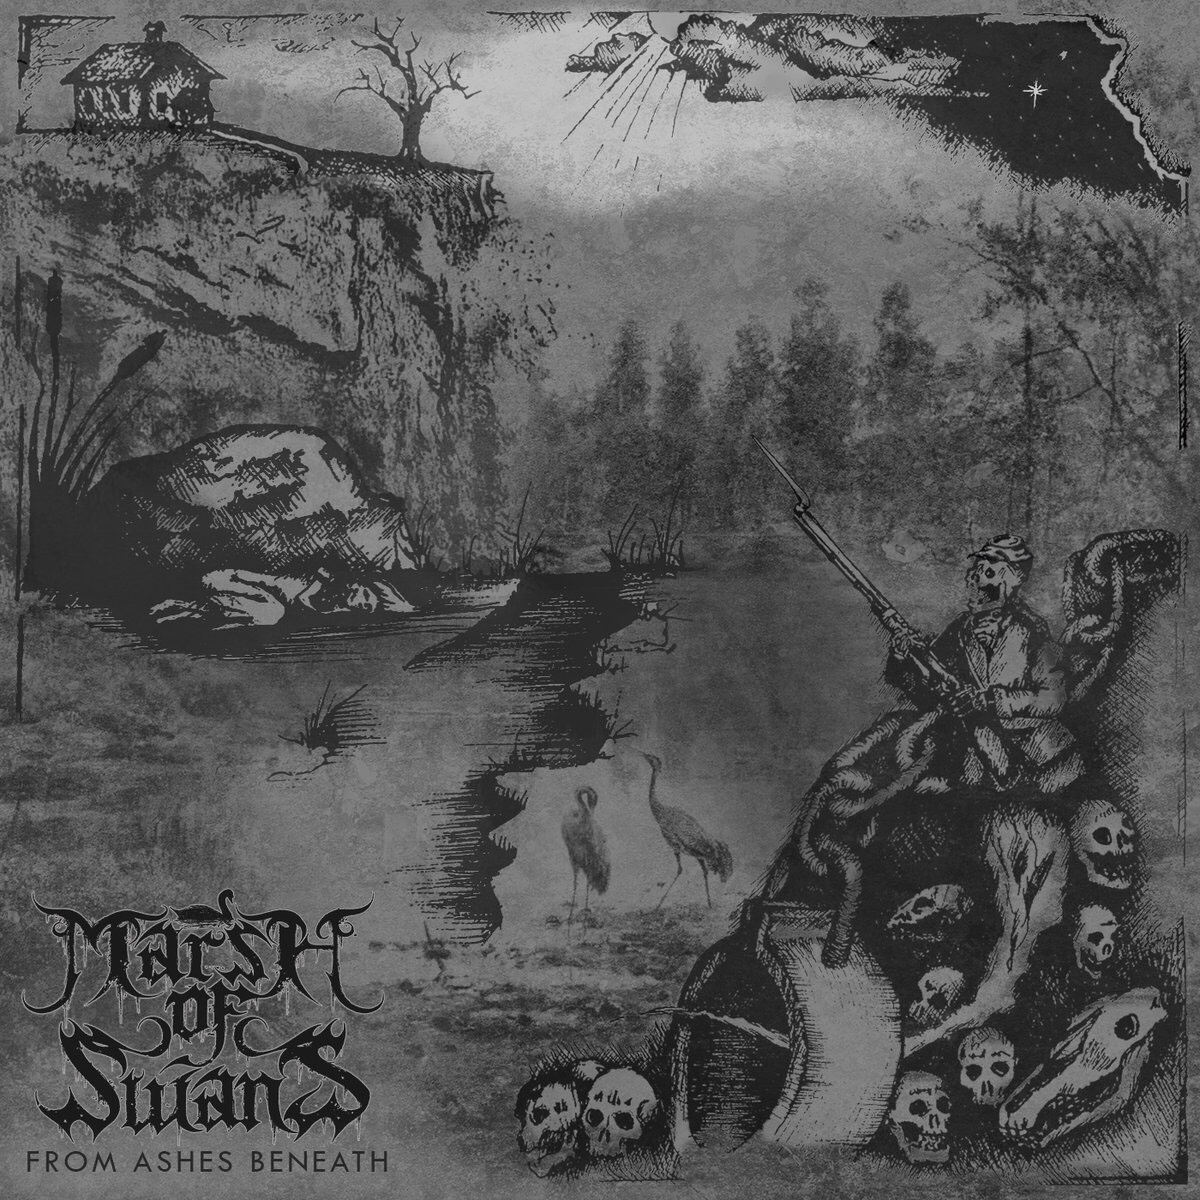 marsh-of-swans-from-ashes-beneath